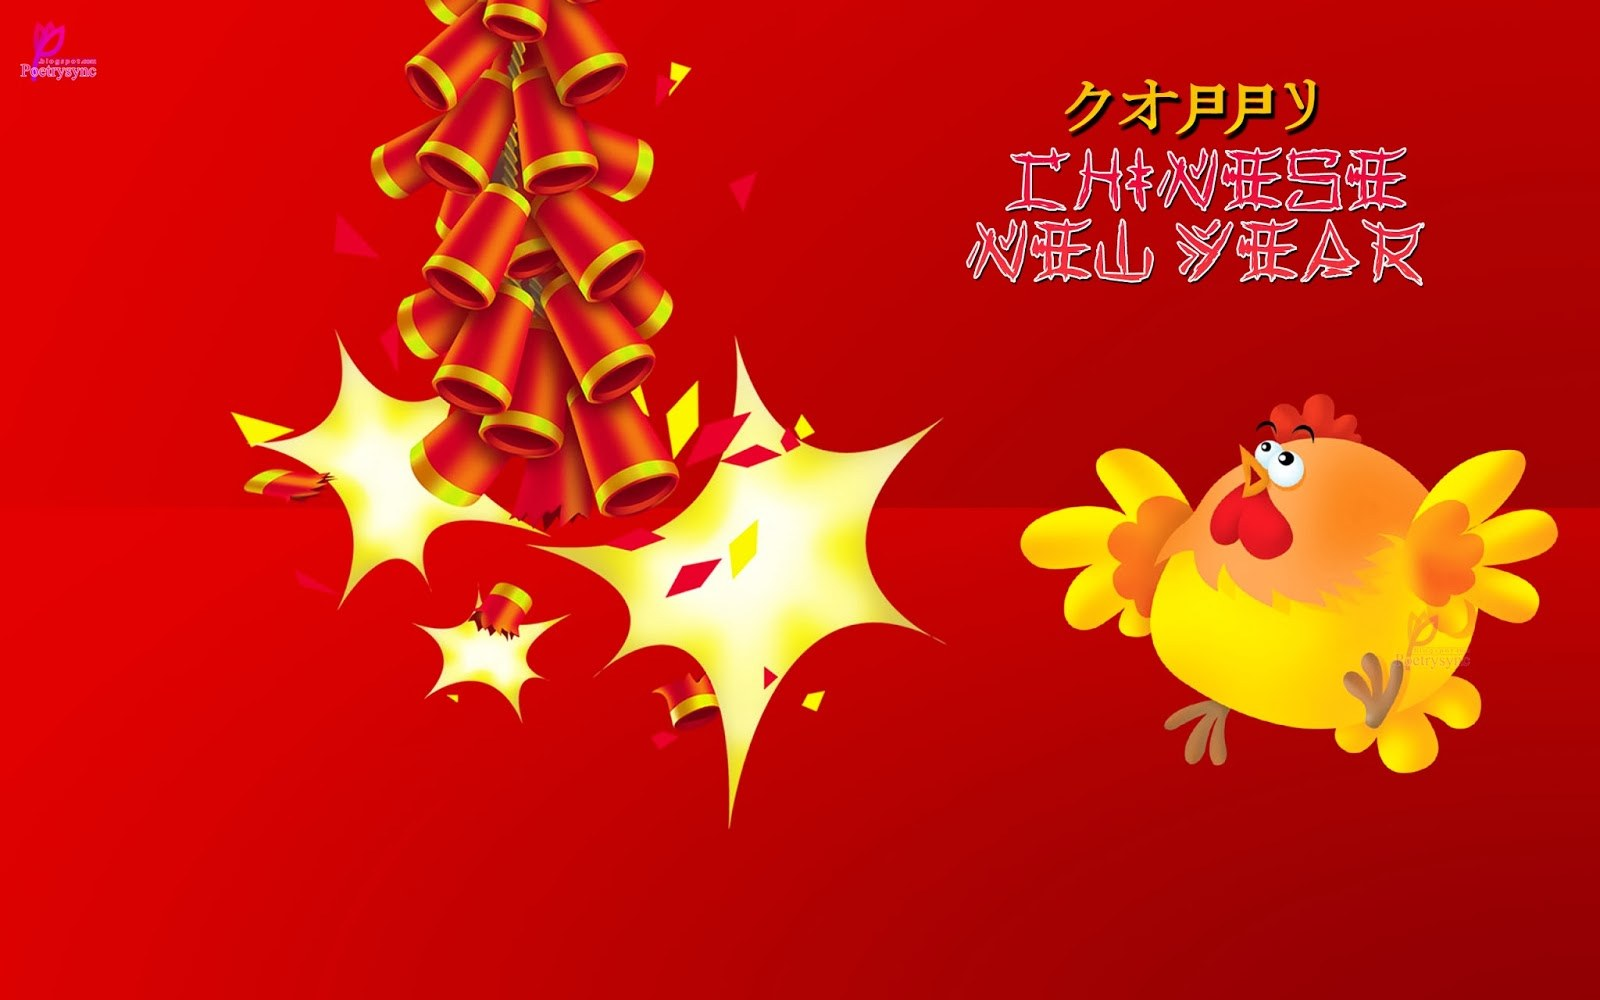 Chinese New Year Greetings Phrases For 2018 Download Happy New